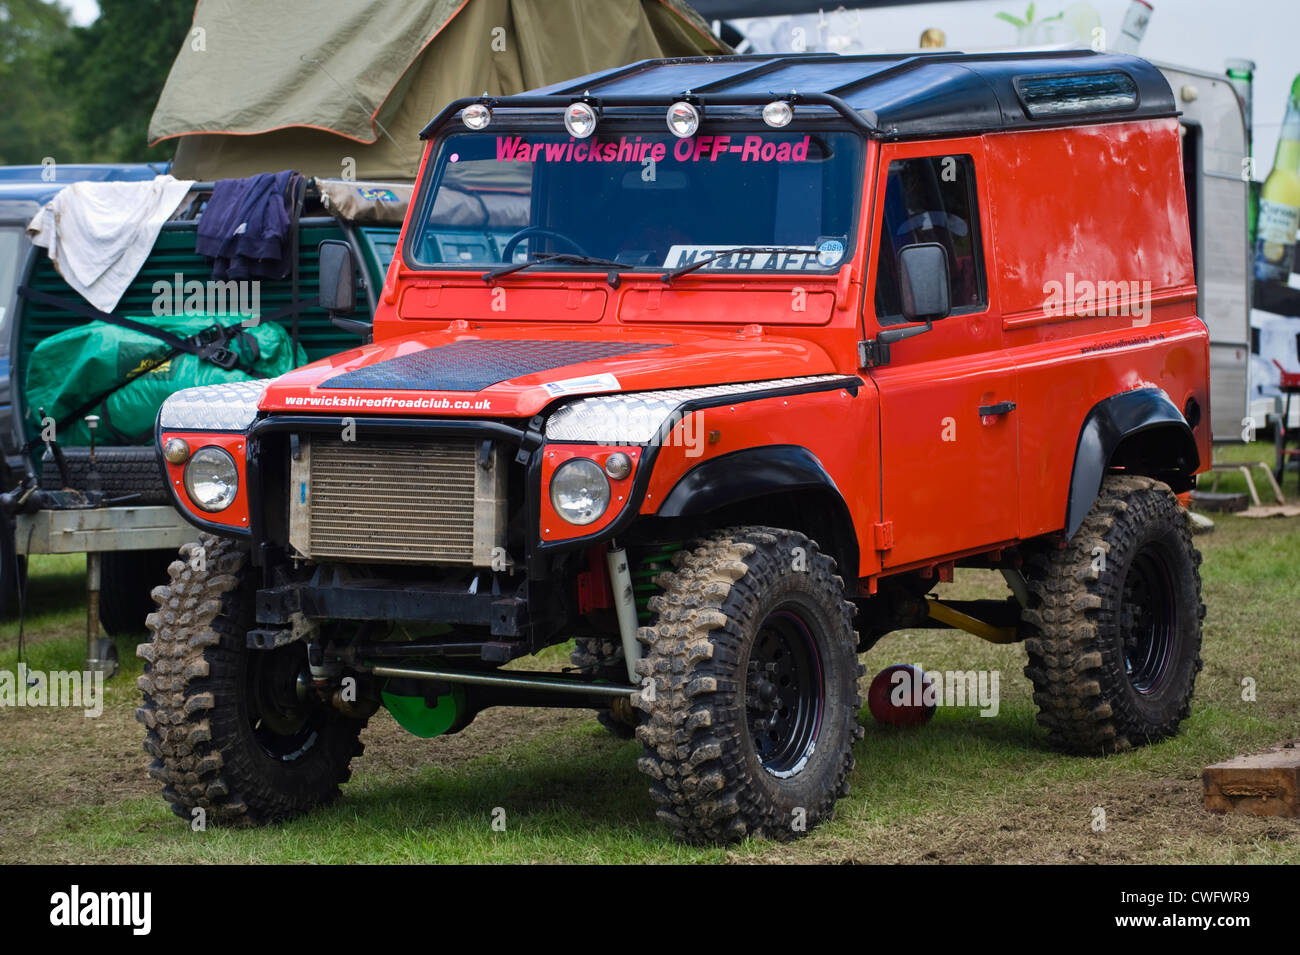 highly modified 4x4 land rover defender 90 for extreme offroading at stock photo 50136669 alamy. Black Bedroom Furniture Sets. Home Design Ideas